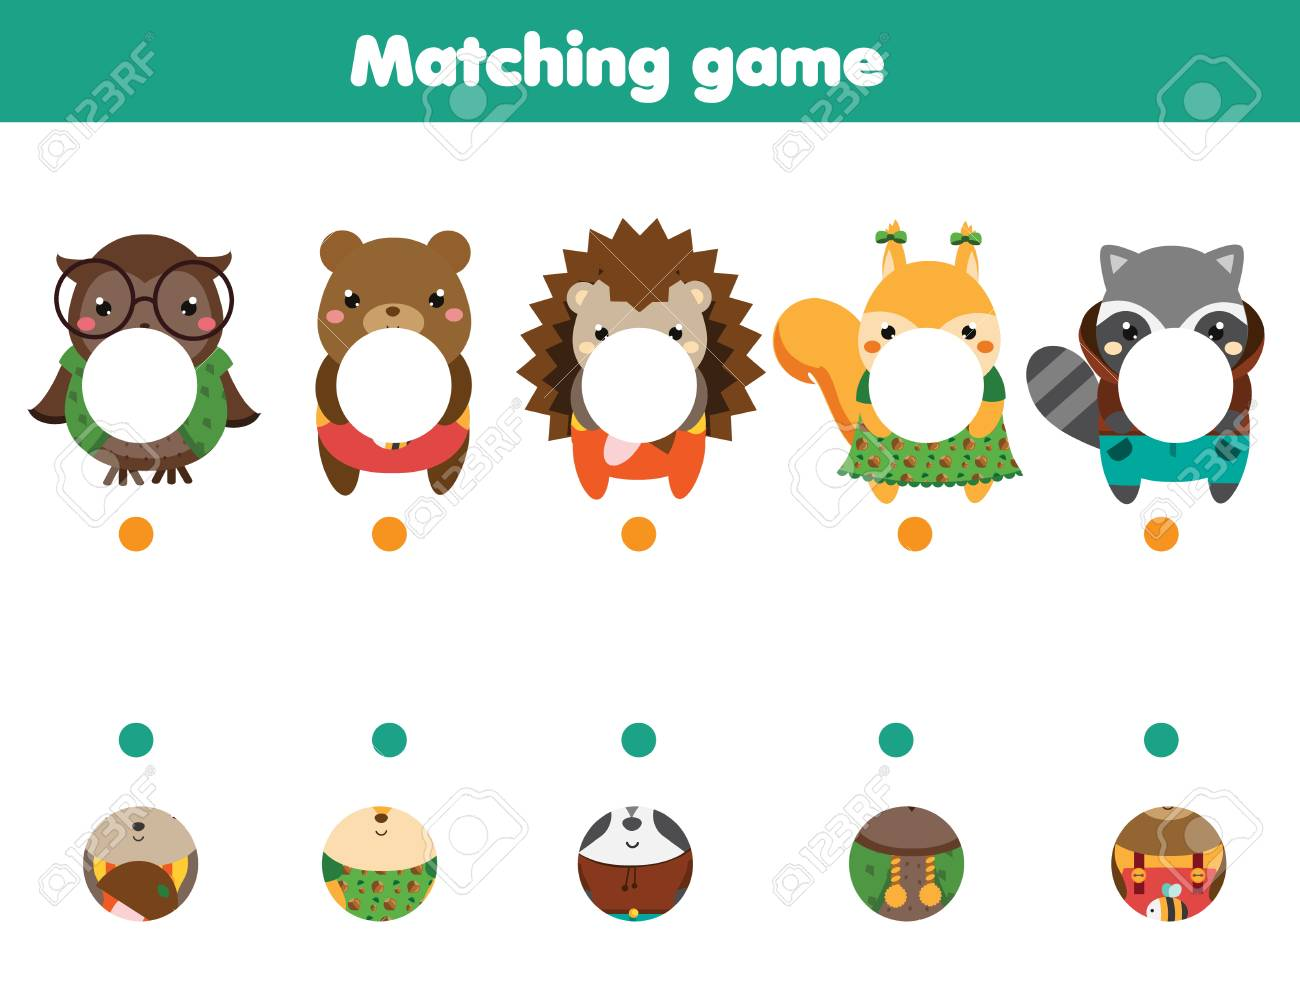 Matching Educational Game Match Parts Of Animals Activity Page Royalty Free Cliparts Vectors And Stock Illustration Image 127666539